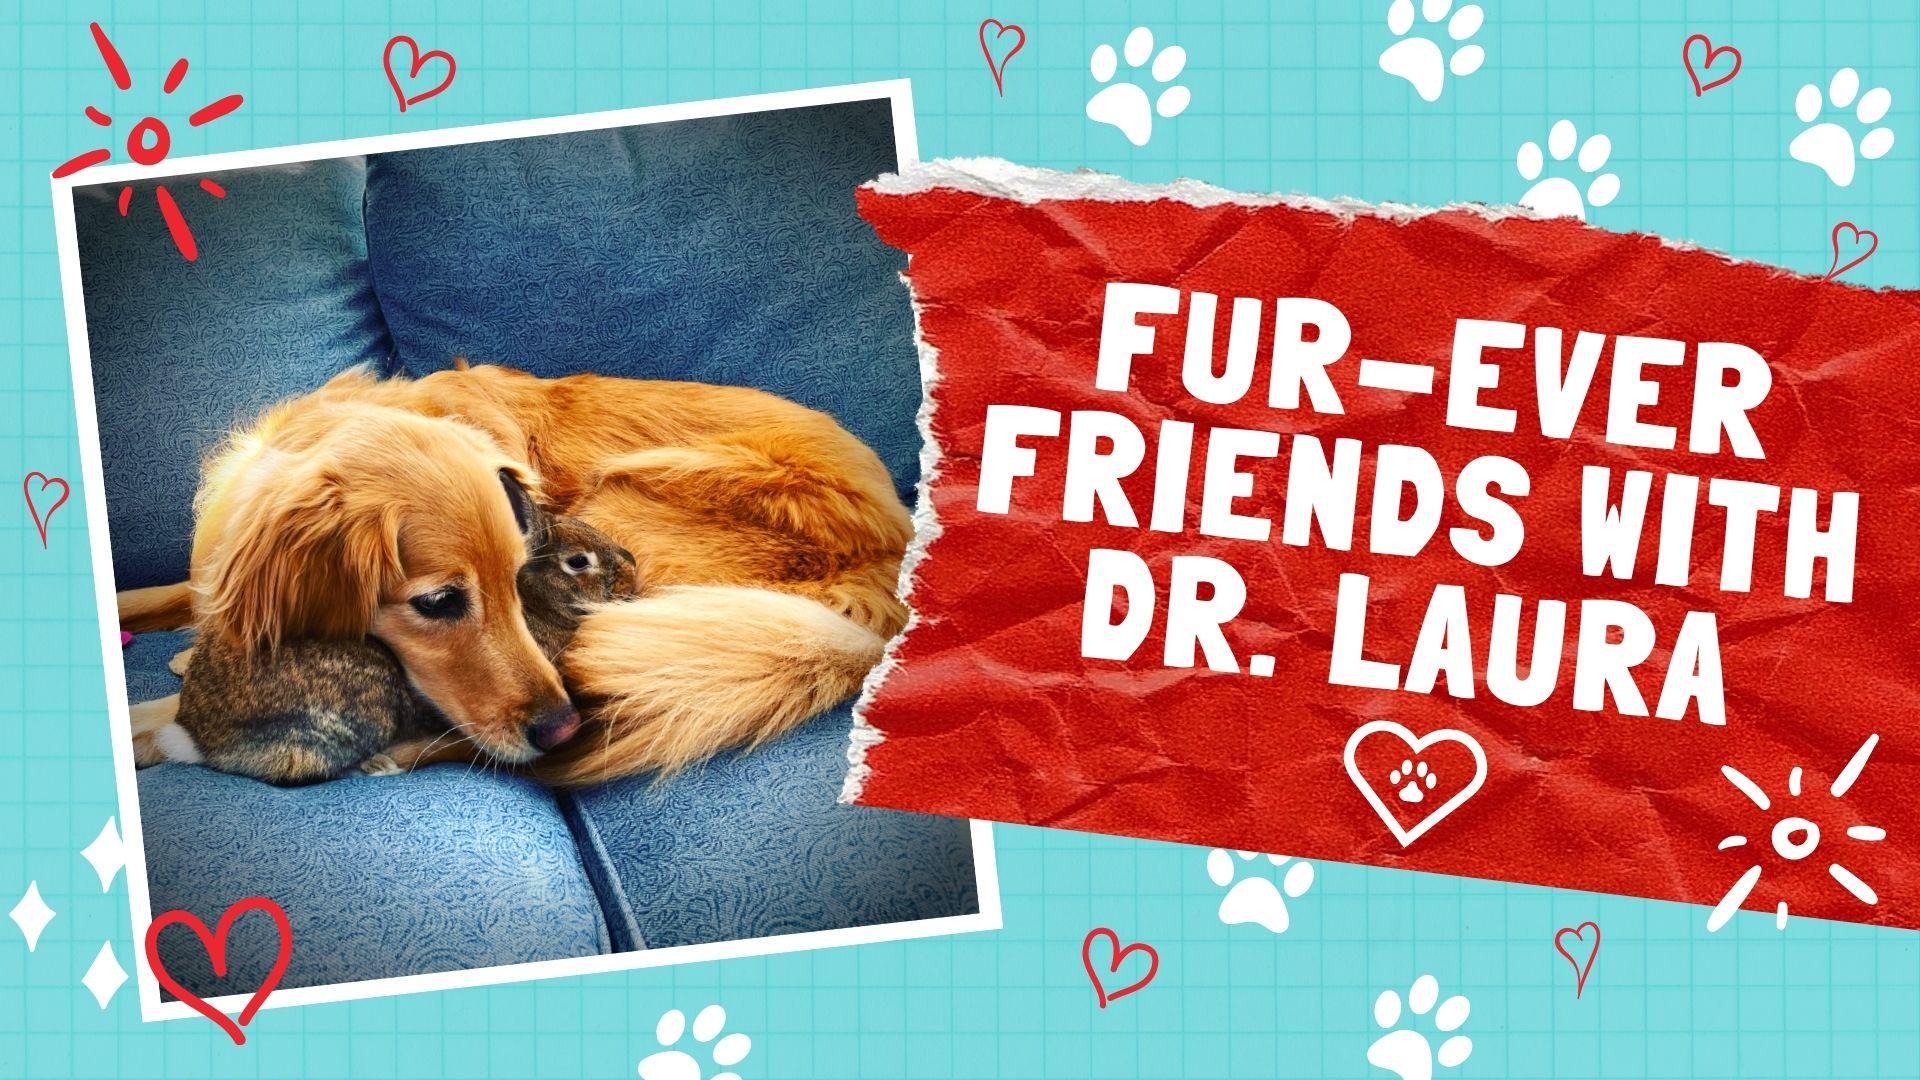 YouTube: Fur-Ever Friends with Dr. Laura